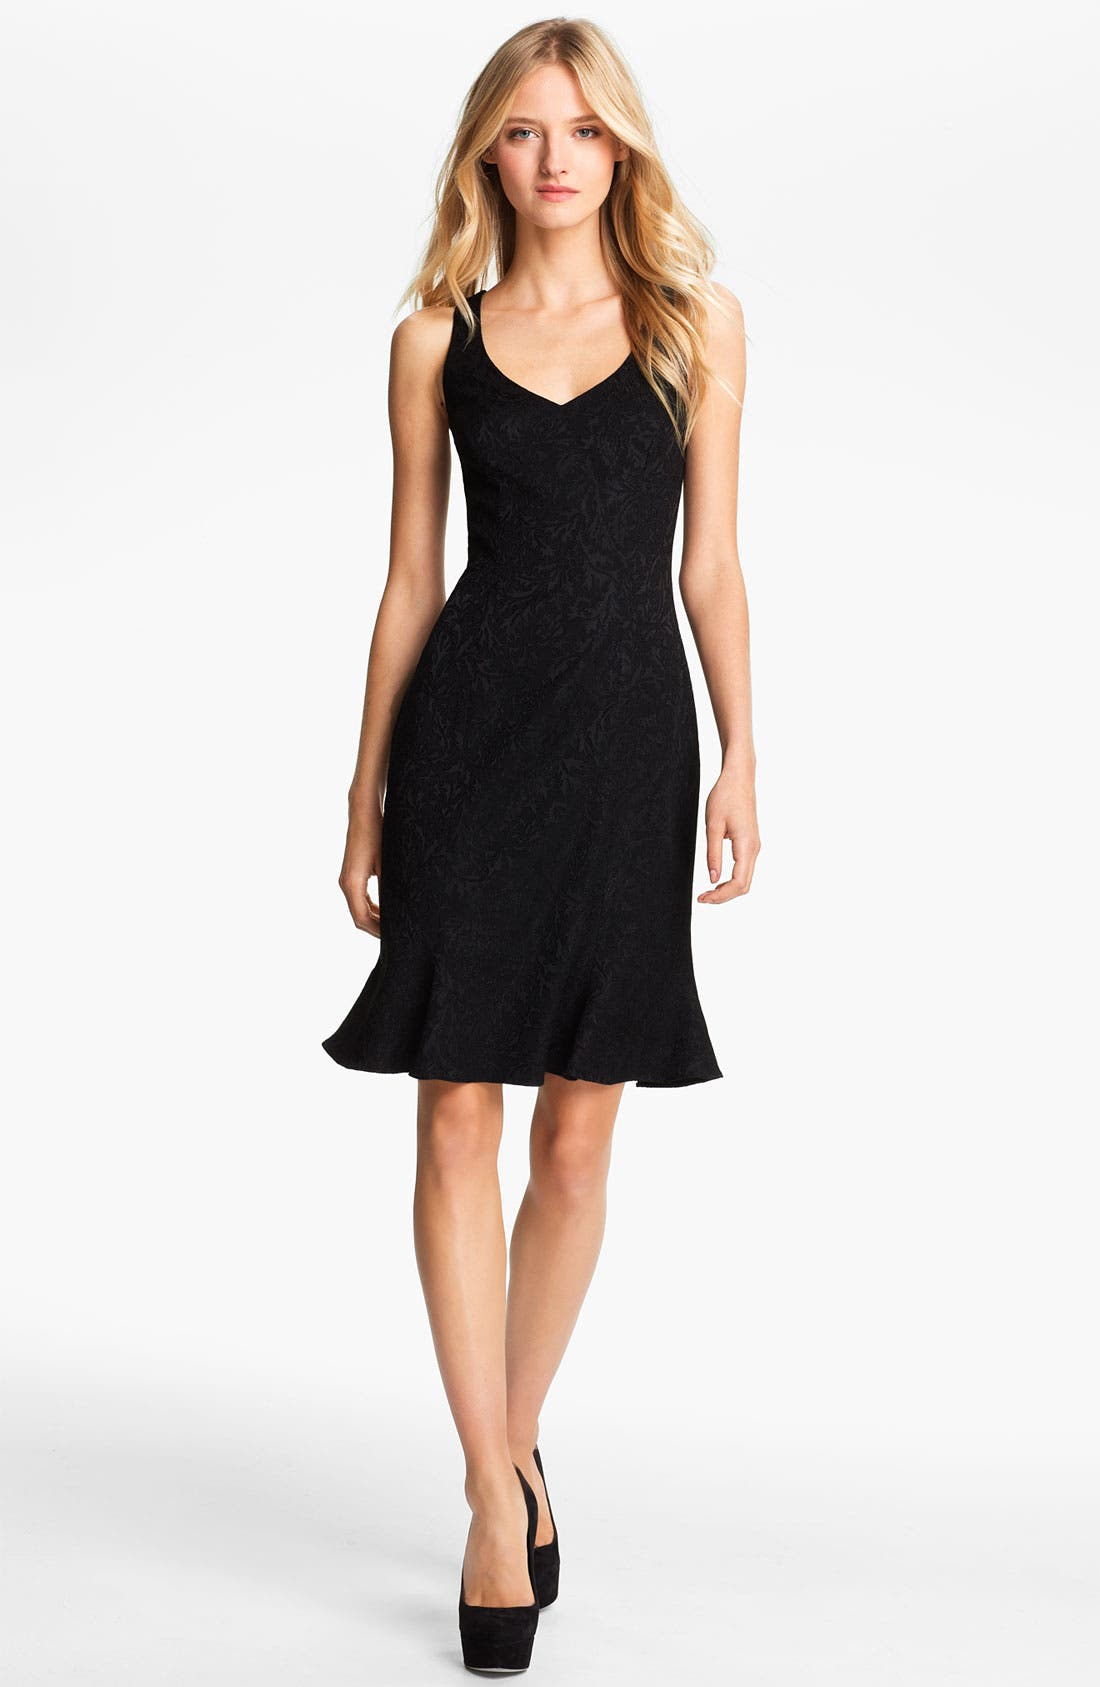 Alternate Image 1 Selected - Jay Godfrey 'Crawford' Jacquard Dress (Nordstrom Exclusive)